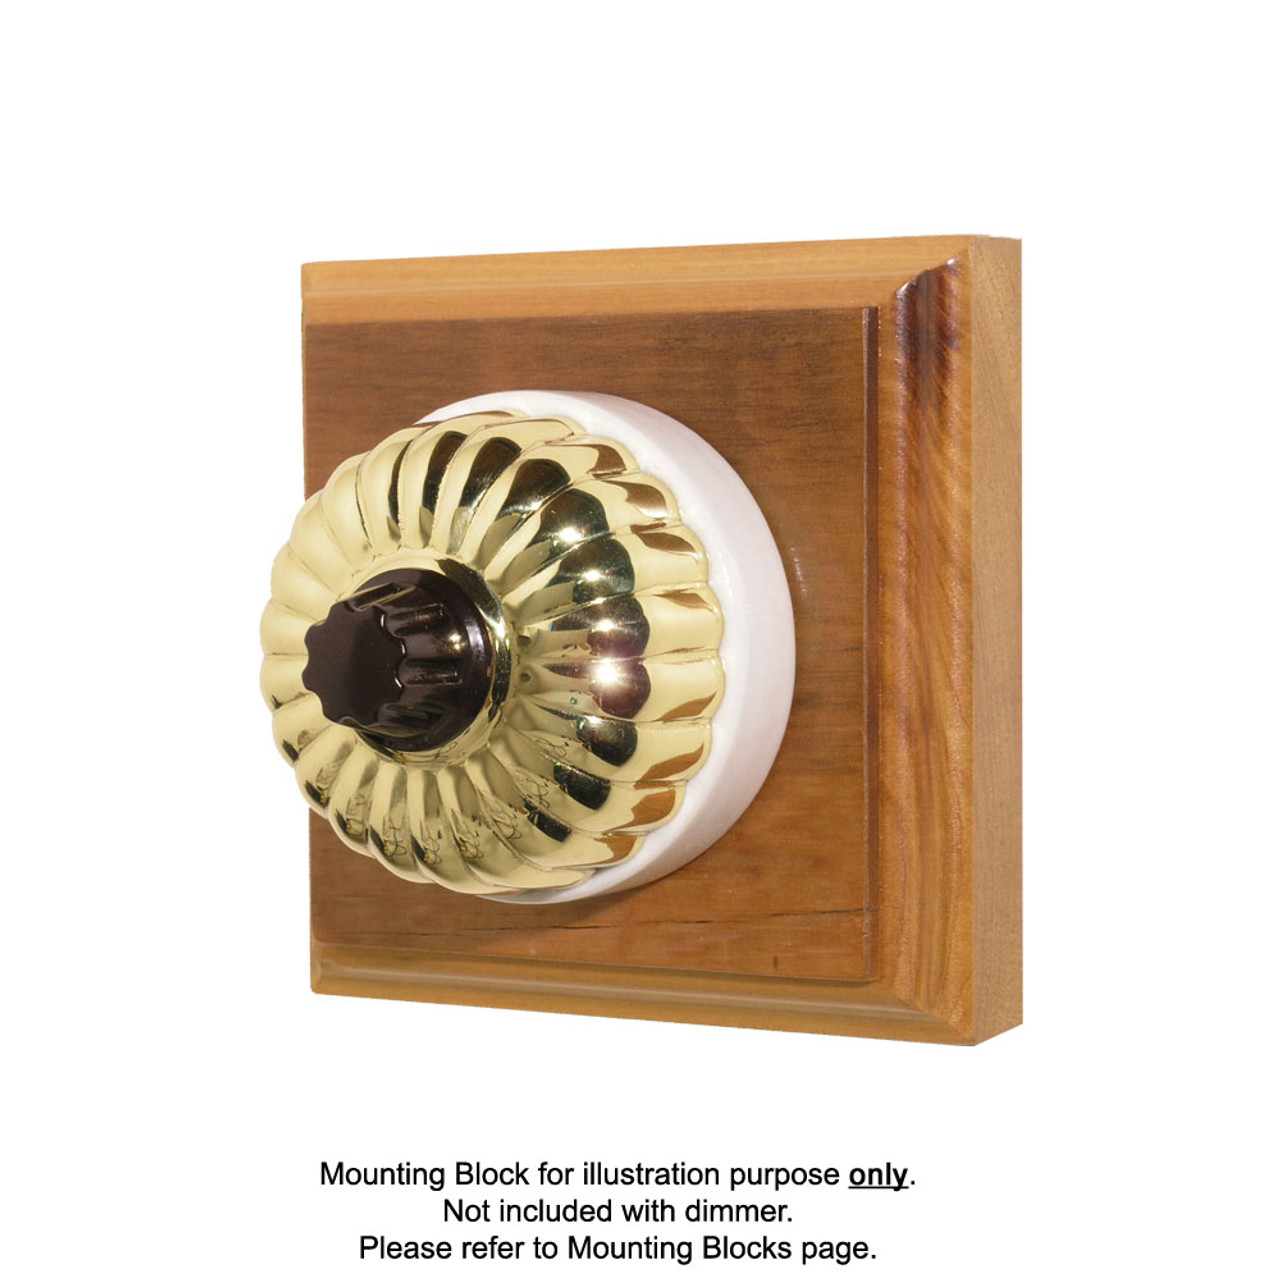 Heritage Clipsal Classic Universal Dimmer Fluted with White Porcelain Base - Brass